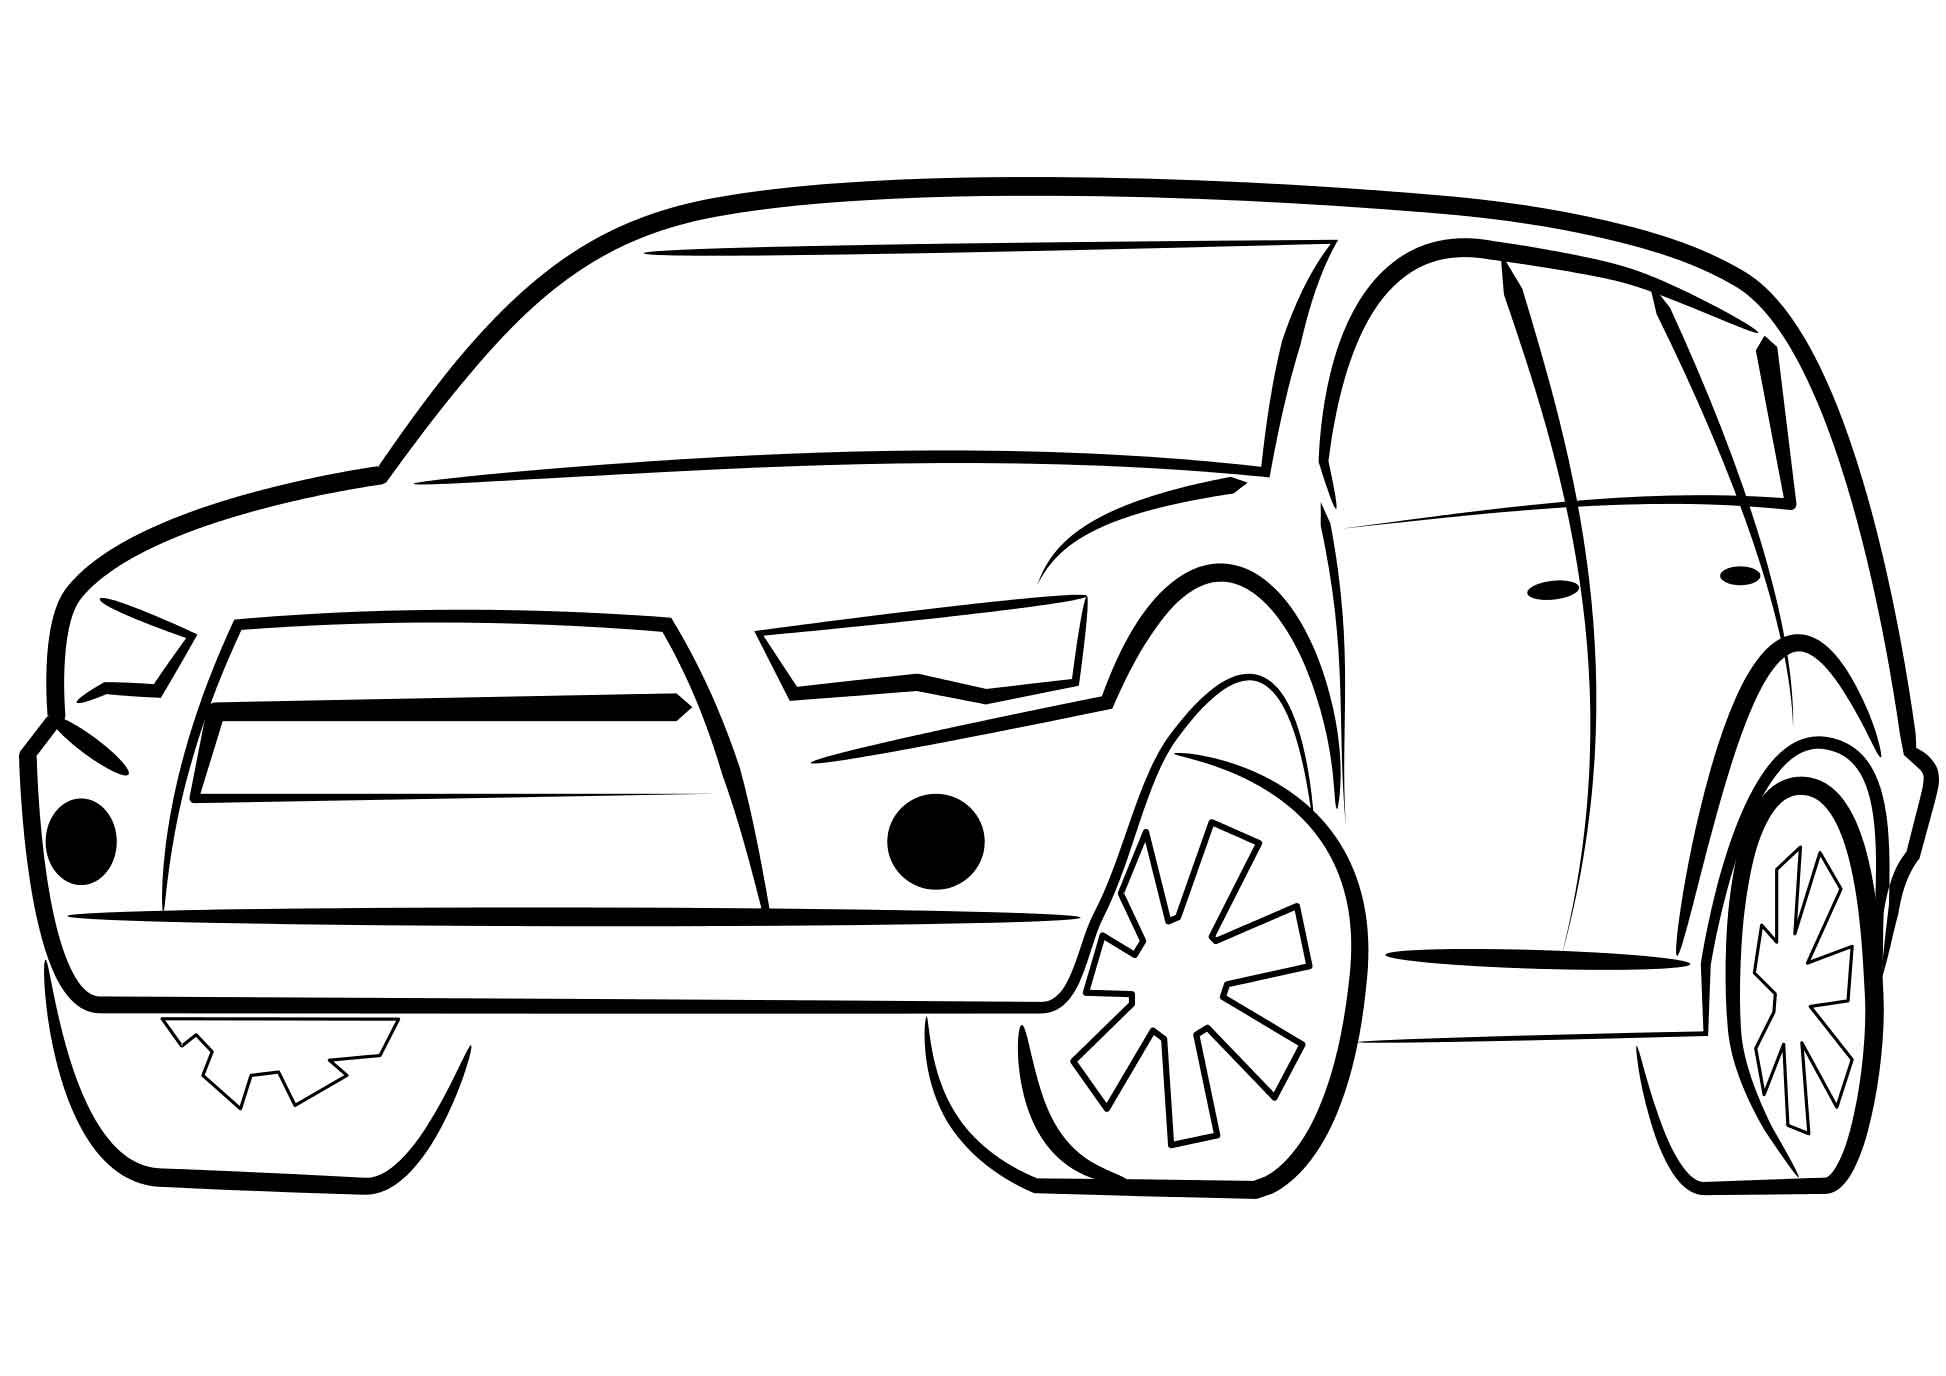 coloring car for kids moving vehicle coloring pages 10 fun cars trucks trains coloring kids for car